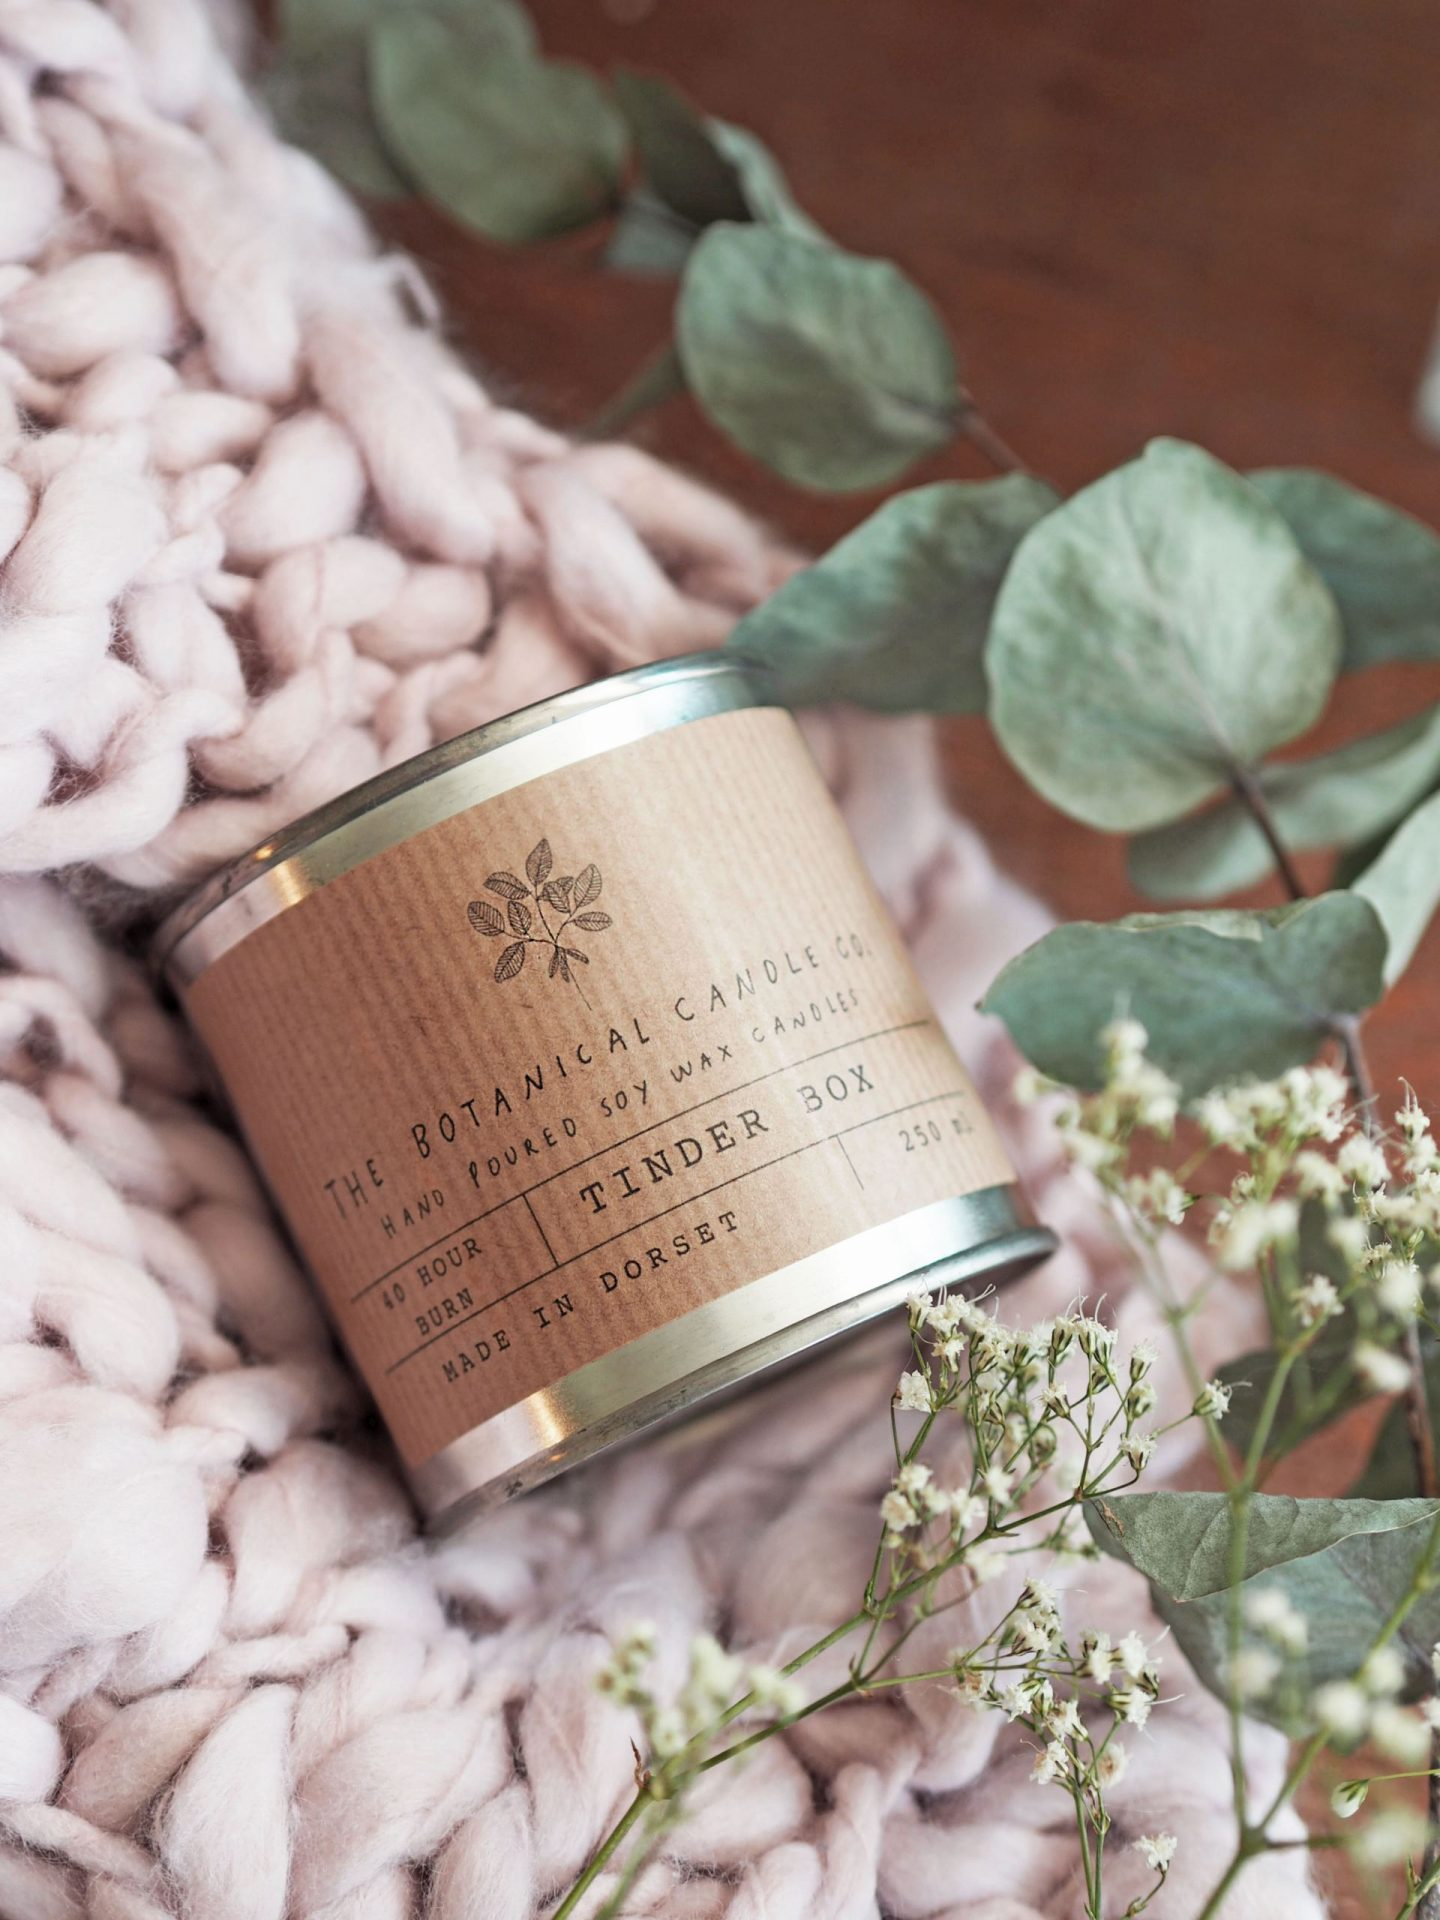 the botanical candle company